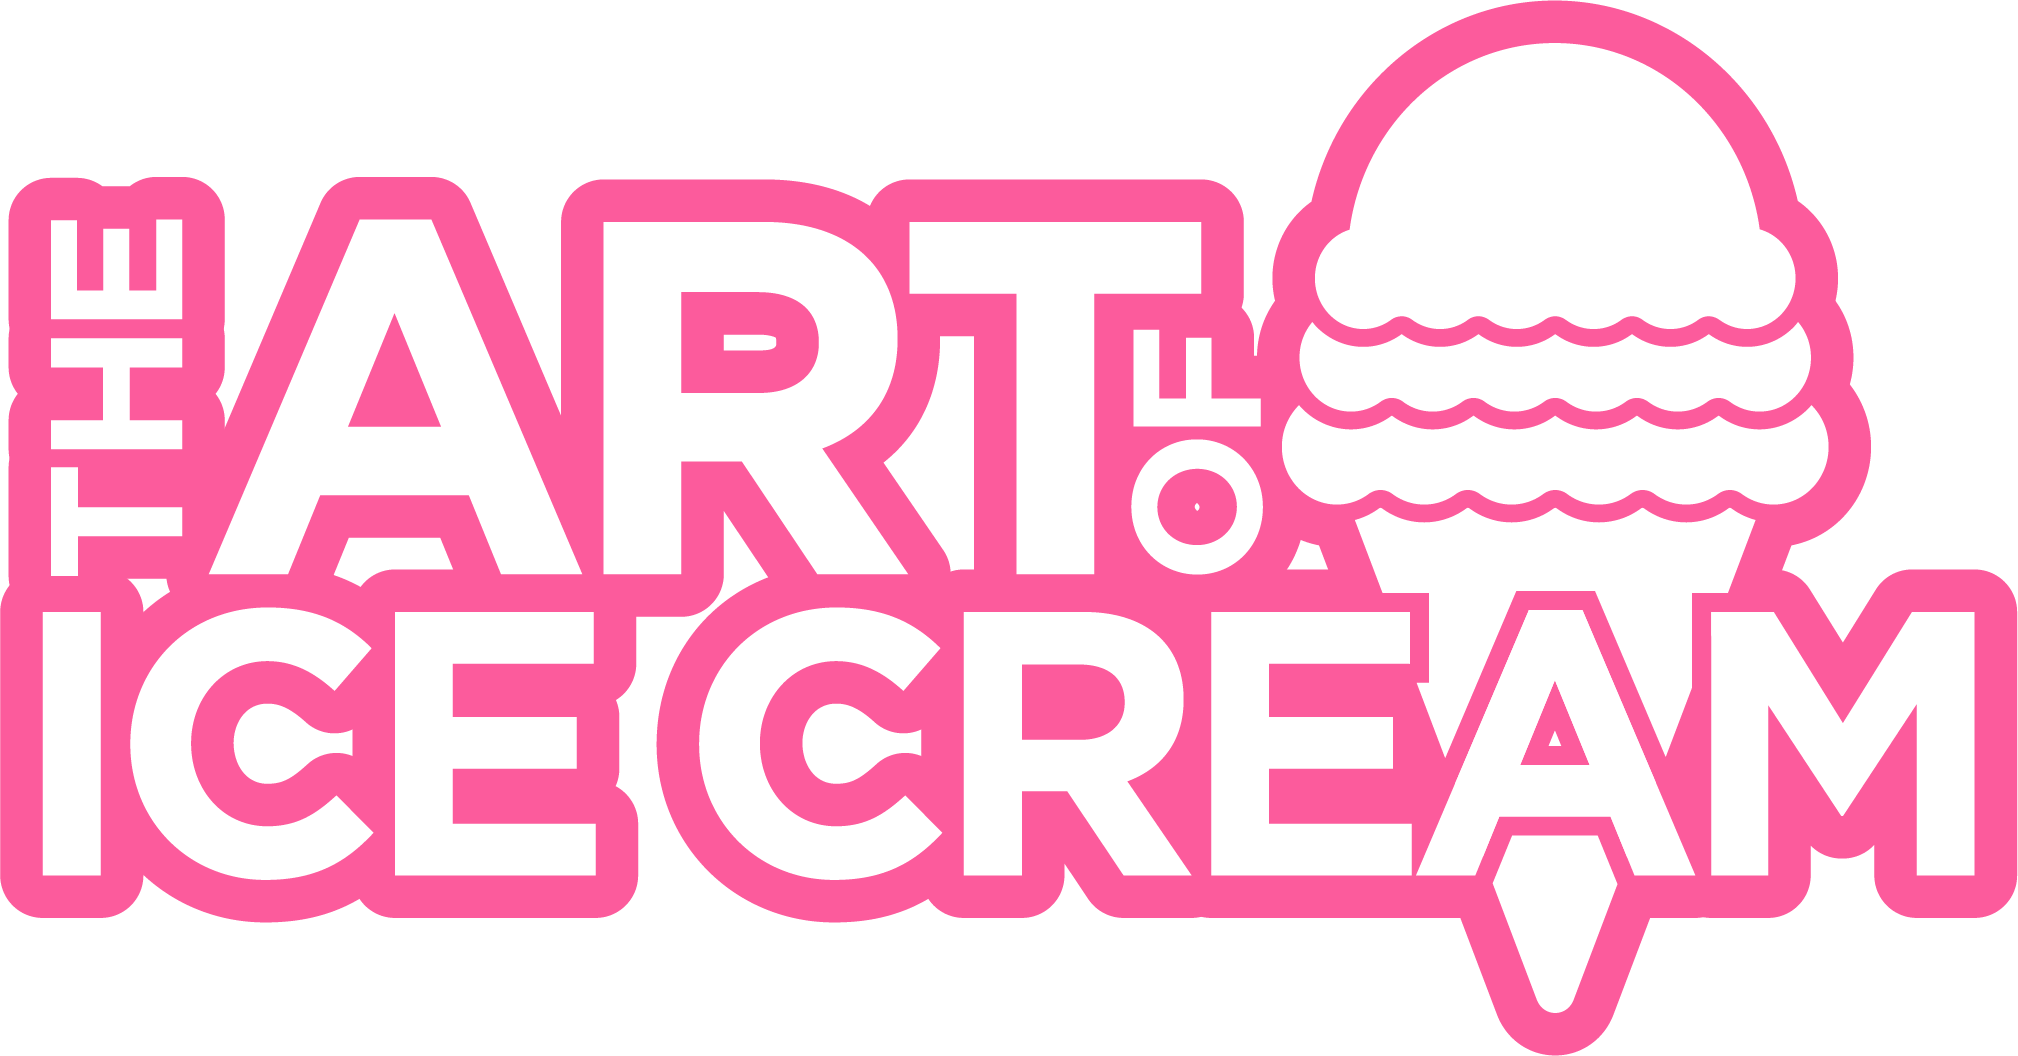 Sprinkles background png. Art of ice cream